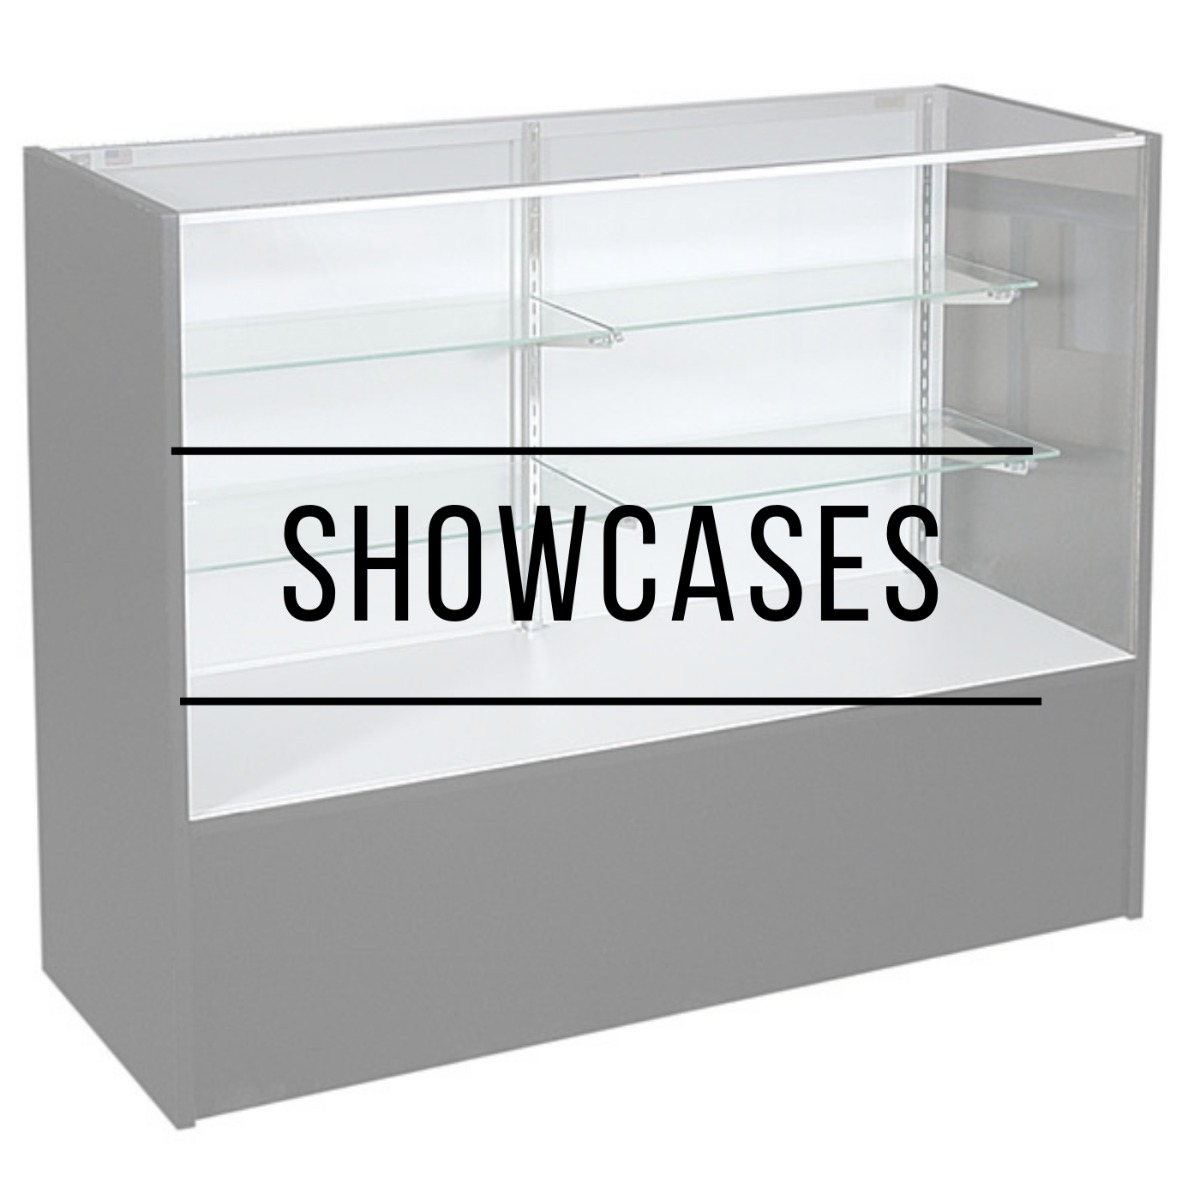 Showcases from small, medium, and tall display your Hawaii products.